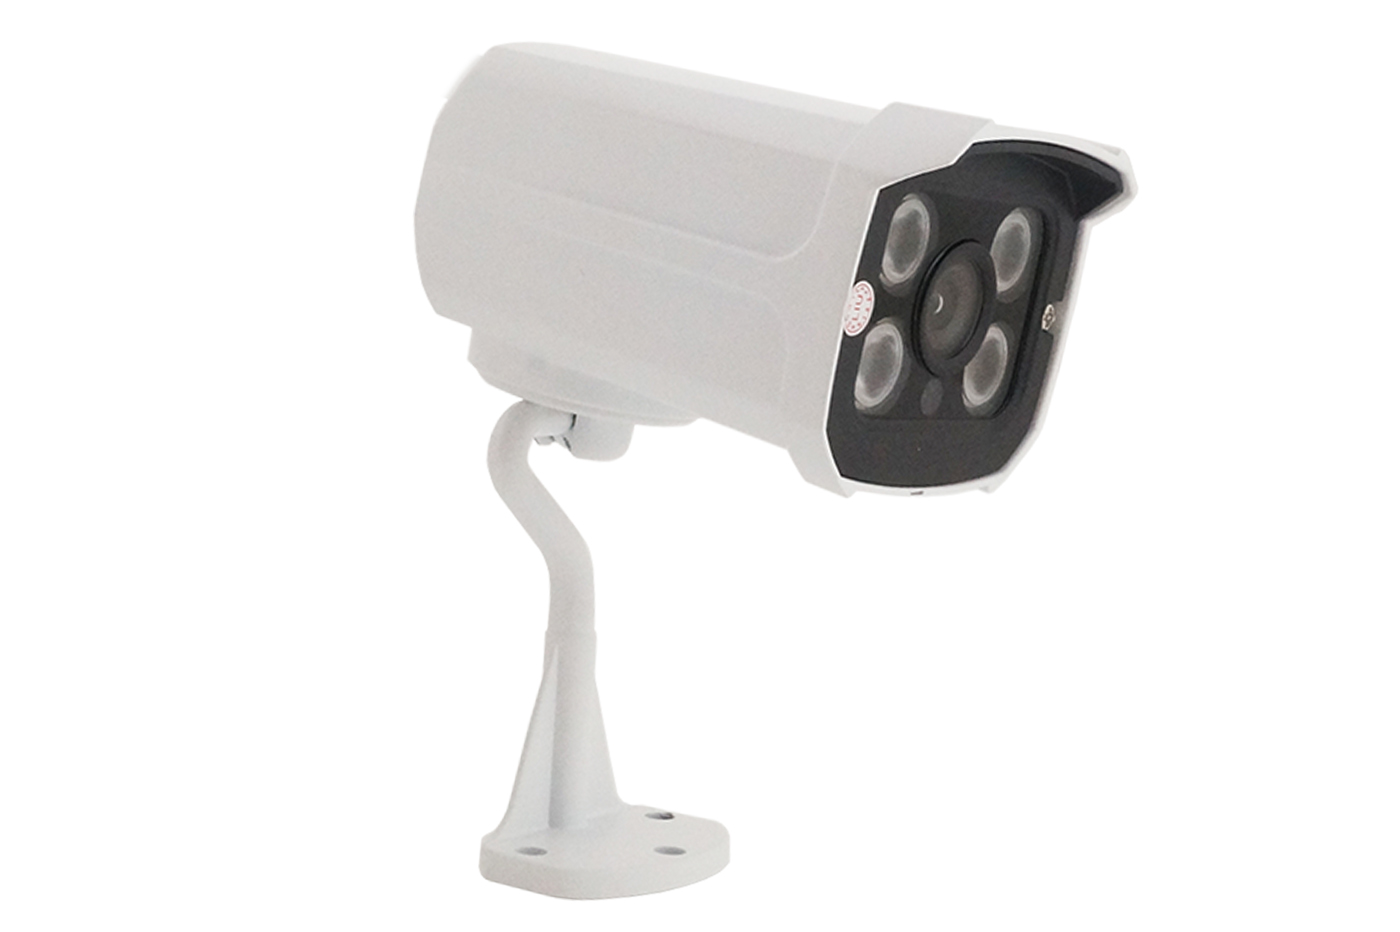 TELECAMERA VIDEOSORVEGLIANZA WIRELESS 4 LED IR ARRAY 3.6MM HD ZQ601